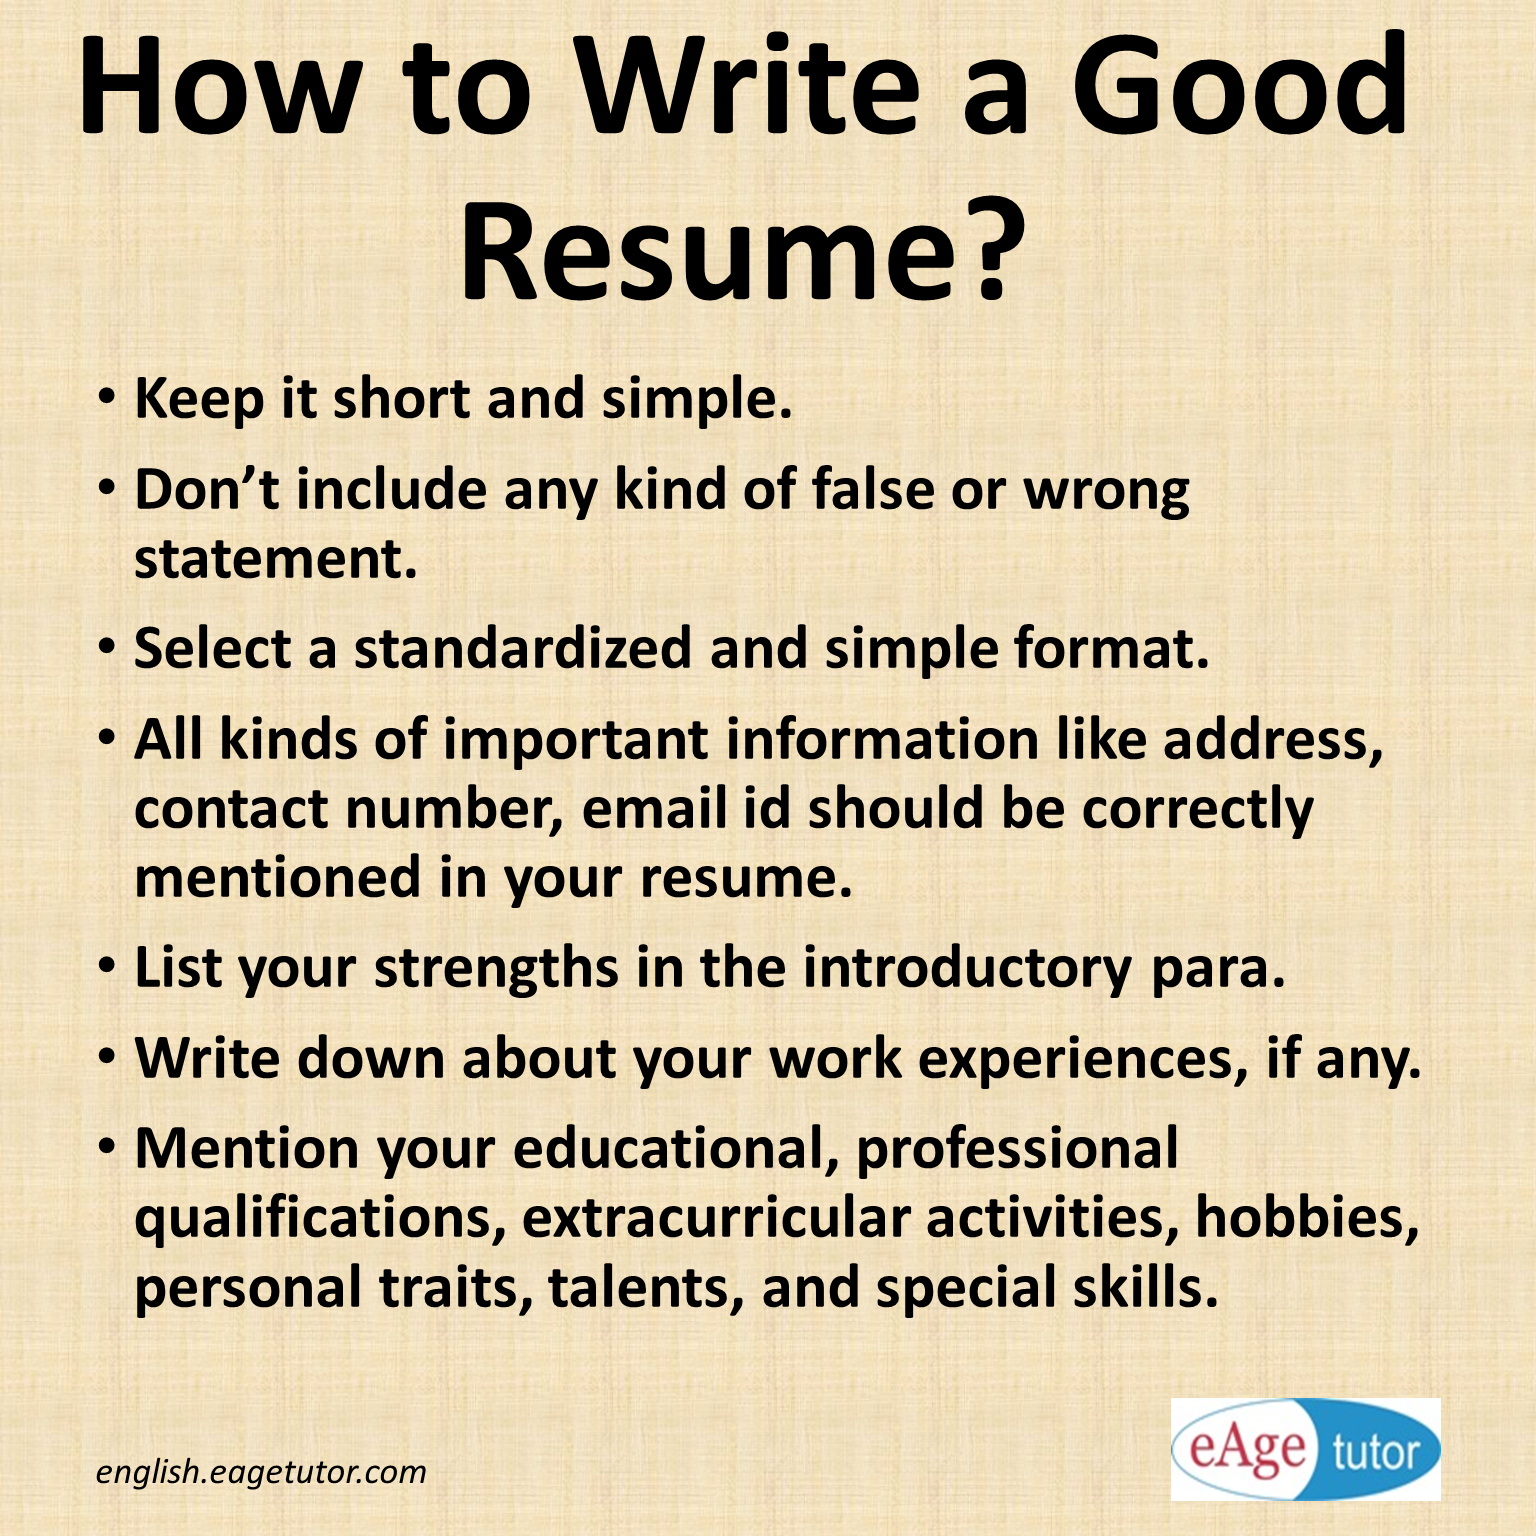 How to write a good resume for the first time? # resume ...